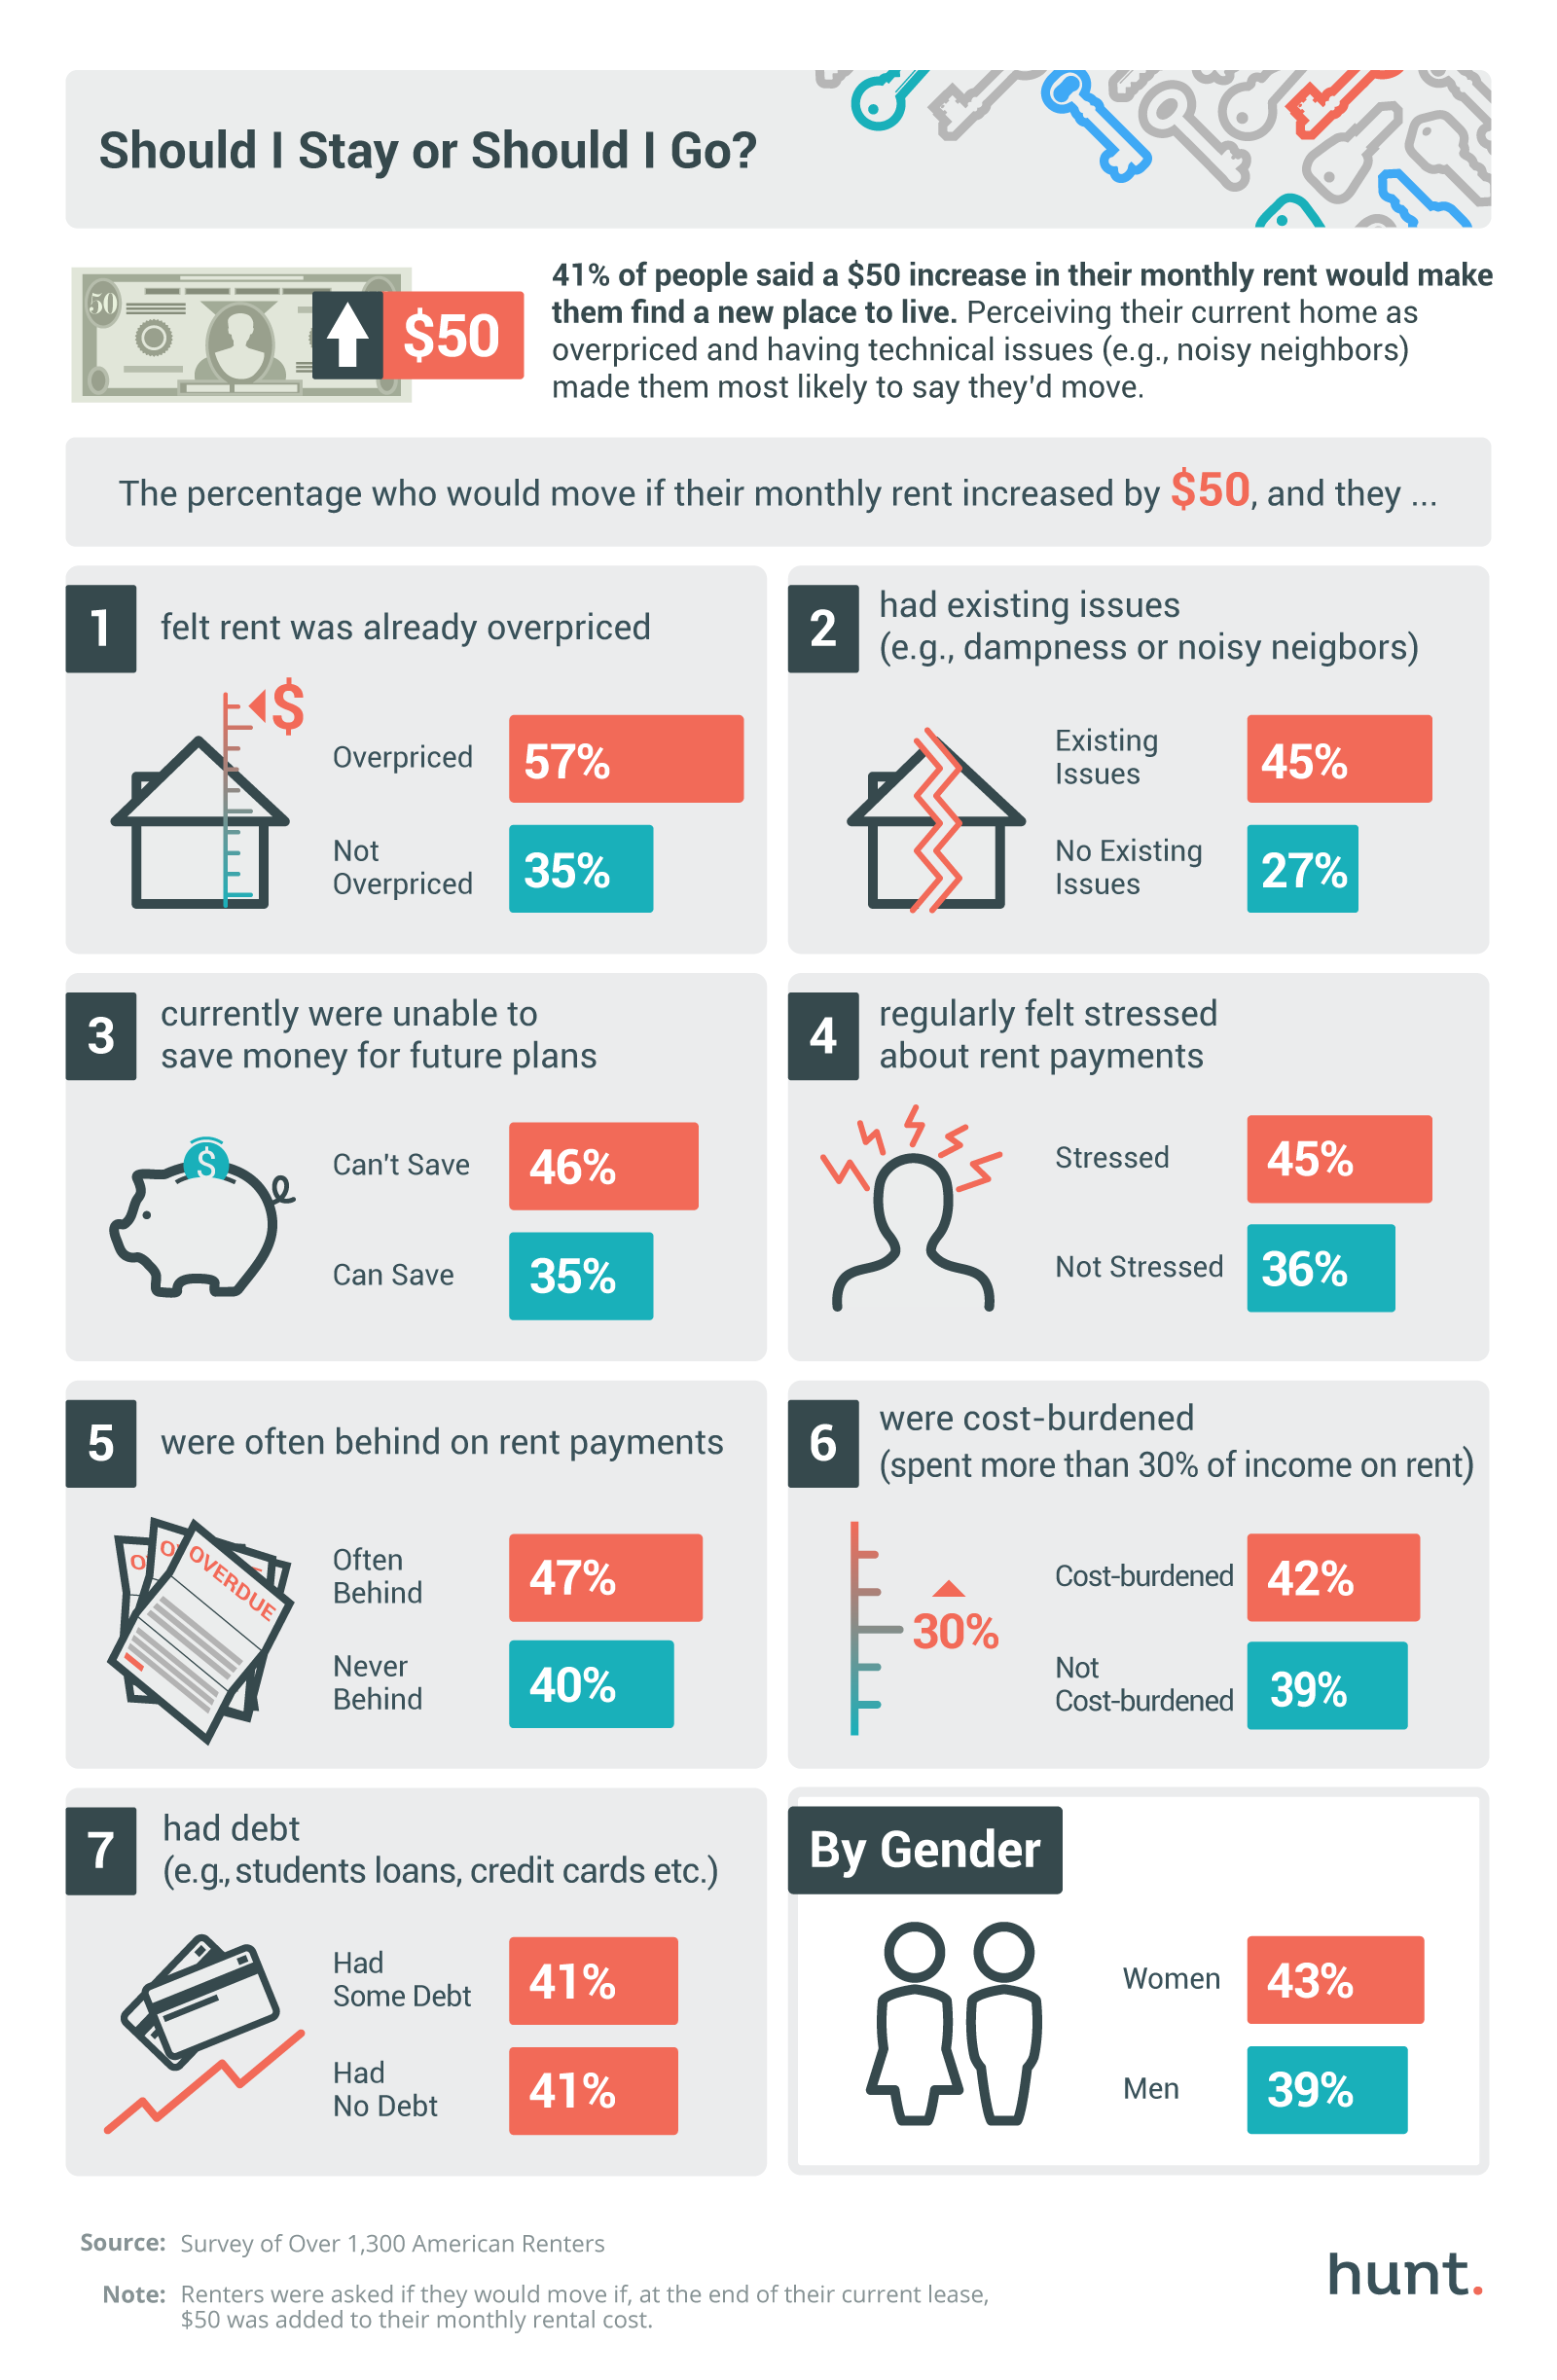 The $50 Dilemma: What Percentage of Renters Would Move If Their Rent Increased by $50?